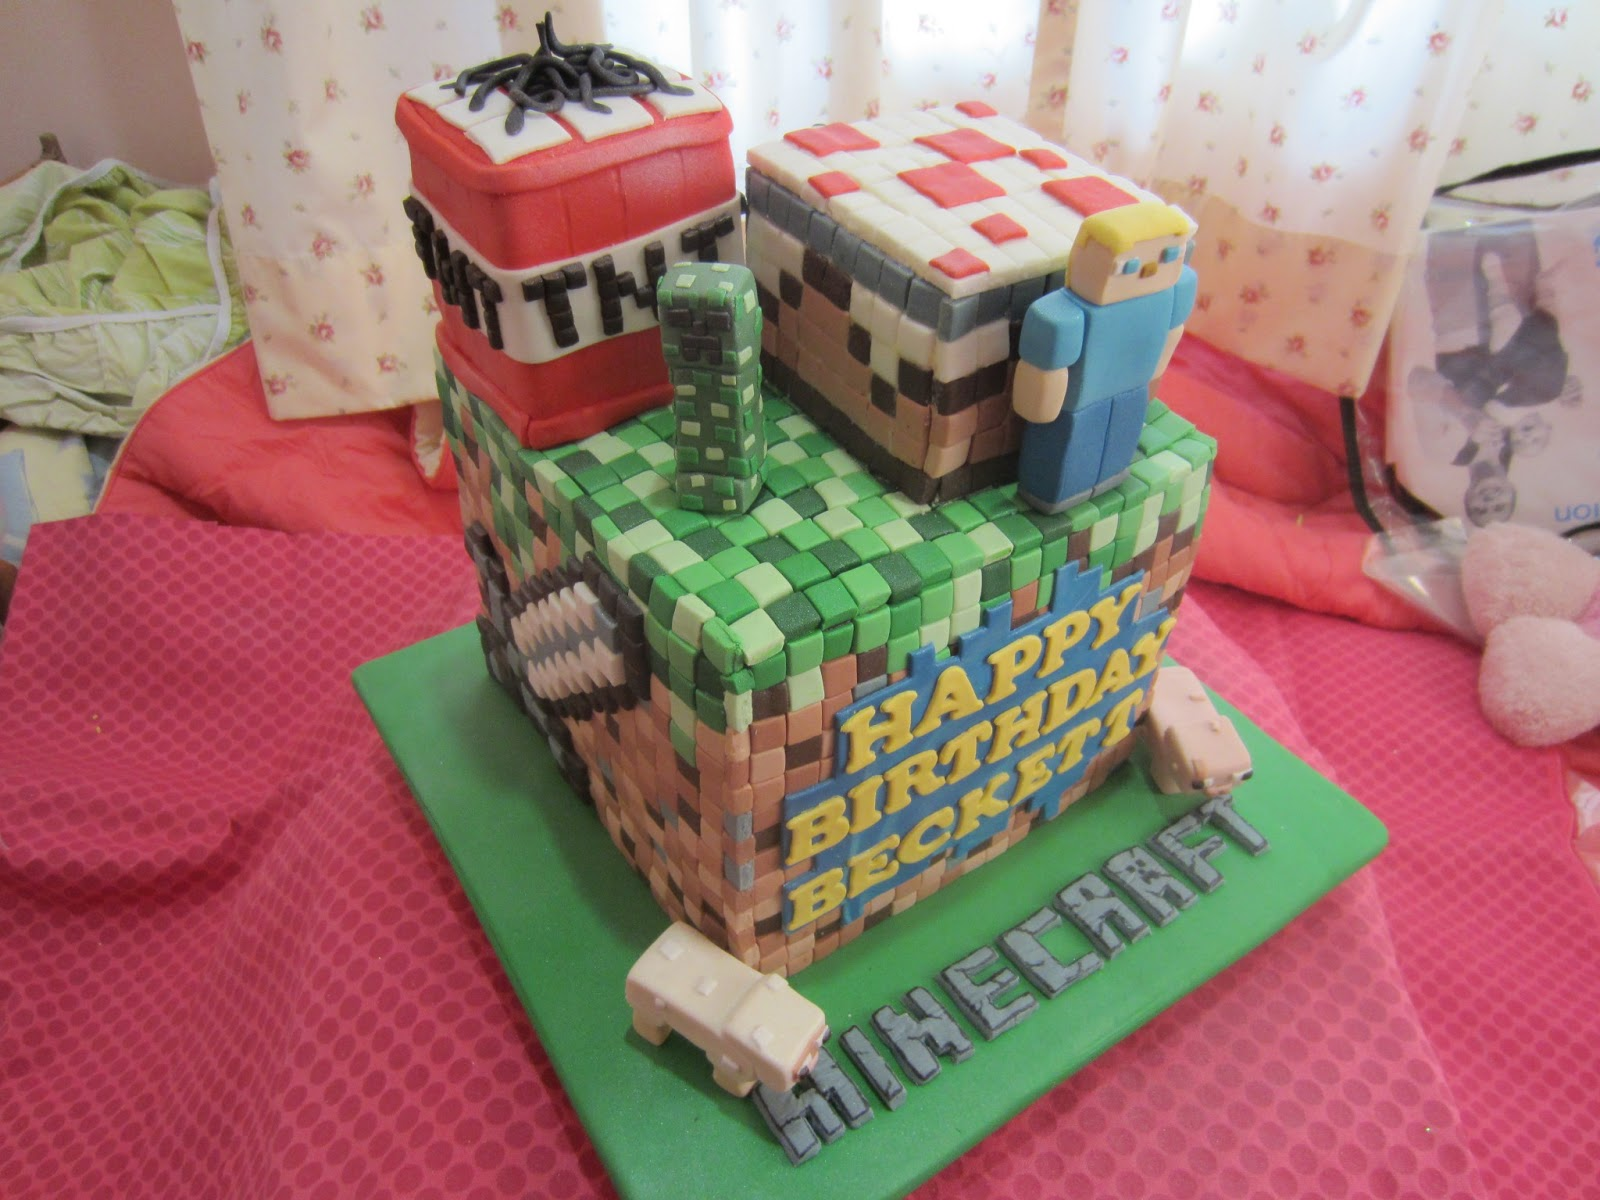 Home Mayde Cakes The Making Minecraft Cake